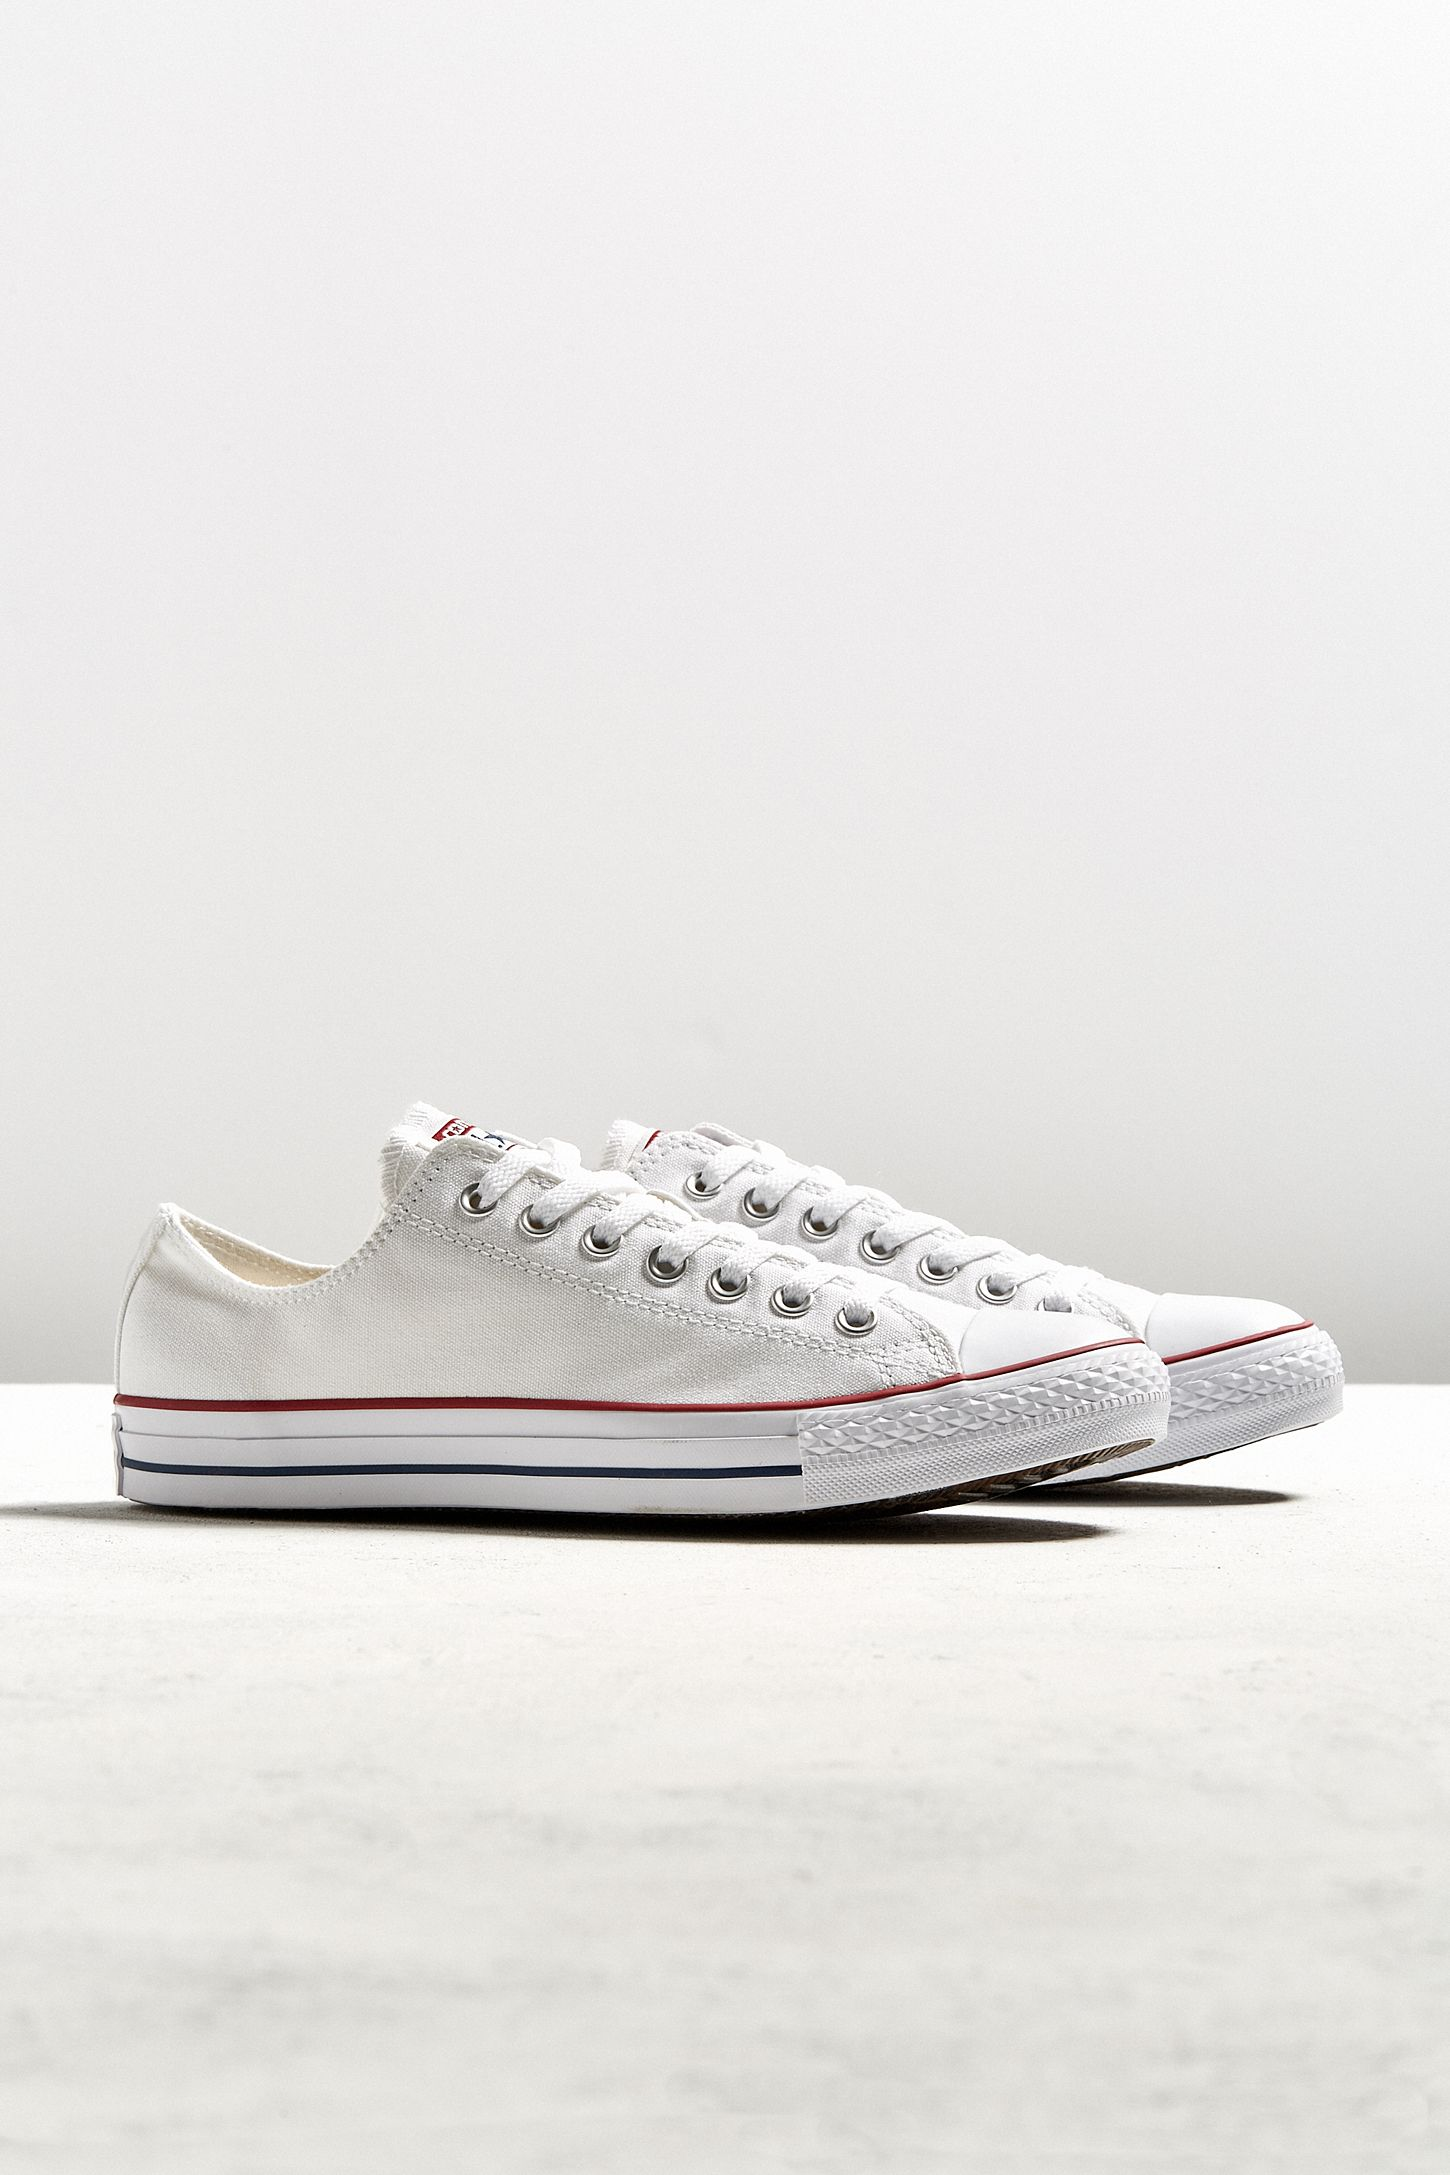 171c1682722f Converse Chuck Taylor All Star Low Top Sneaker